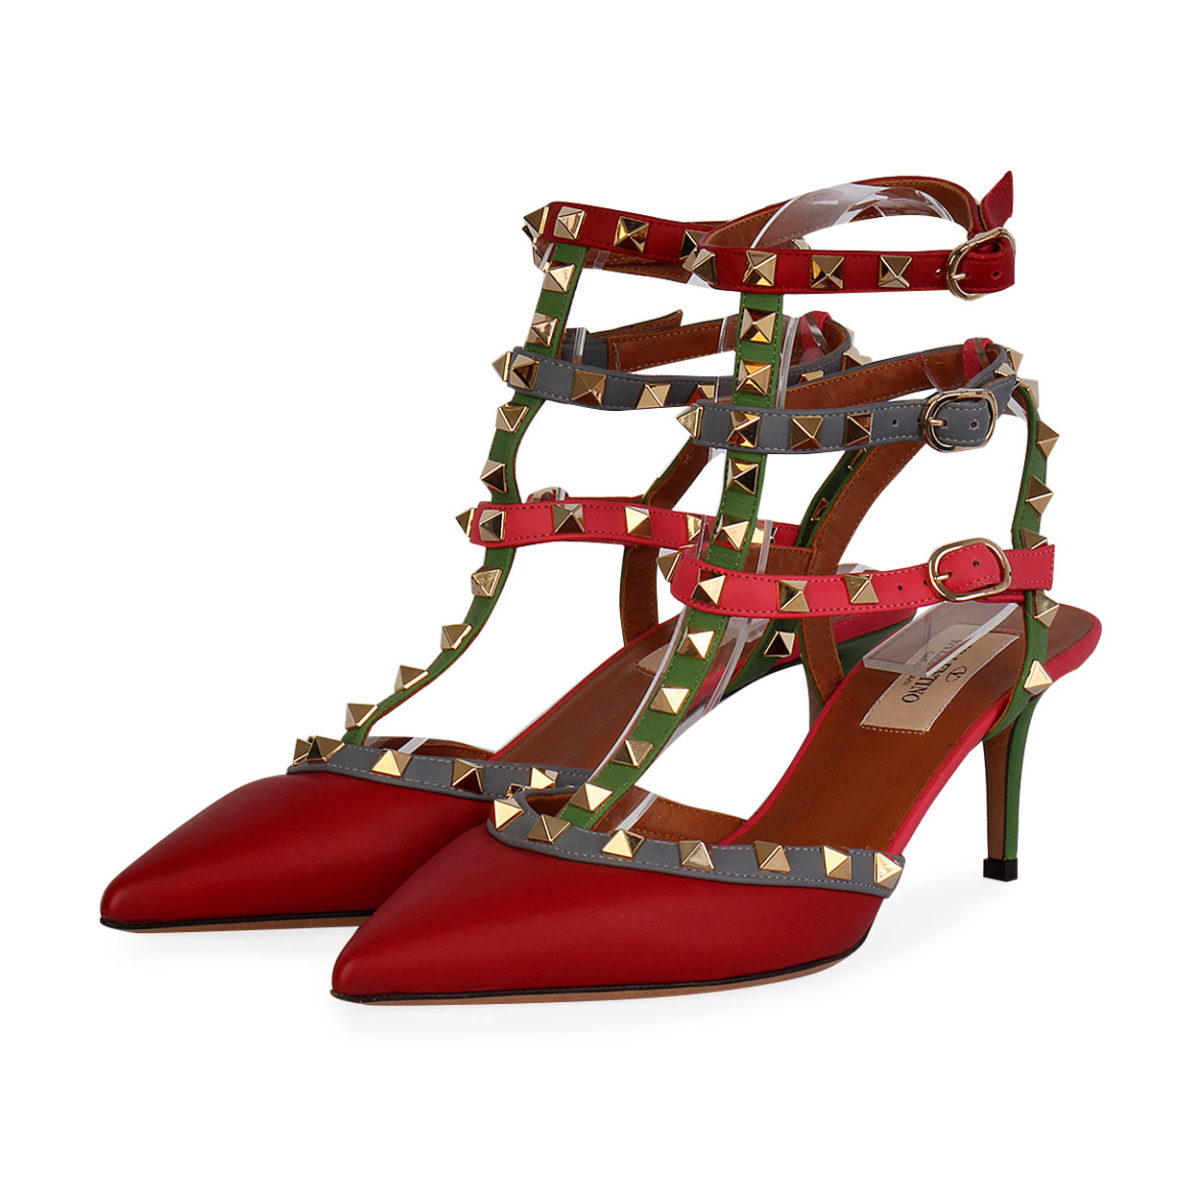 42dc4ad2402 VALENTINO Pebbled Leather Rockstud T-Strap Kitten Heel Pumps Red - S: 38  (5) - NEW